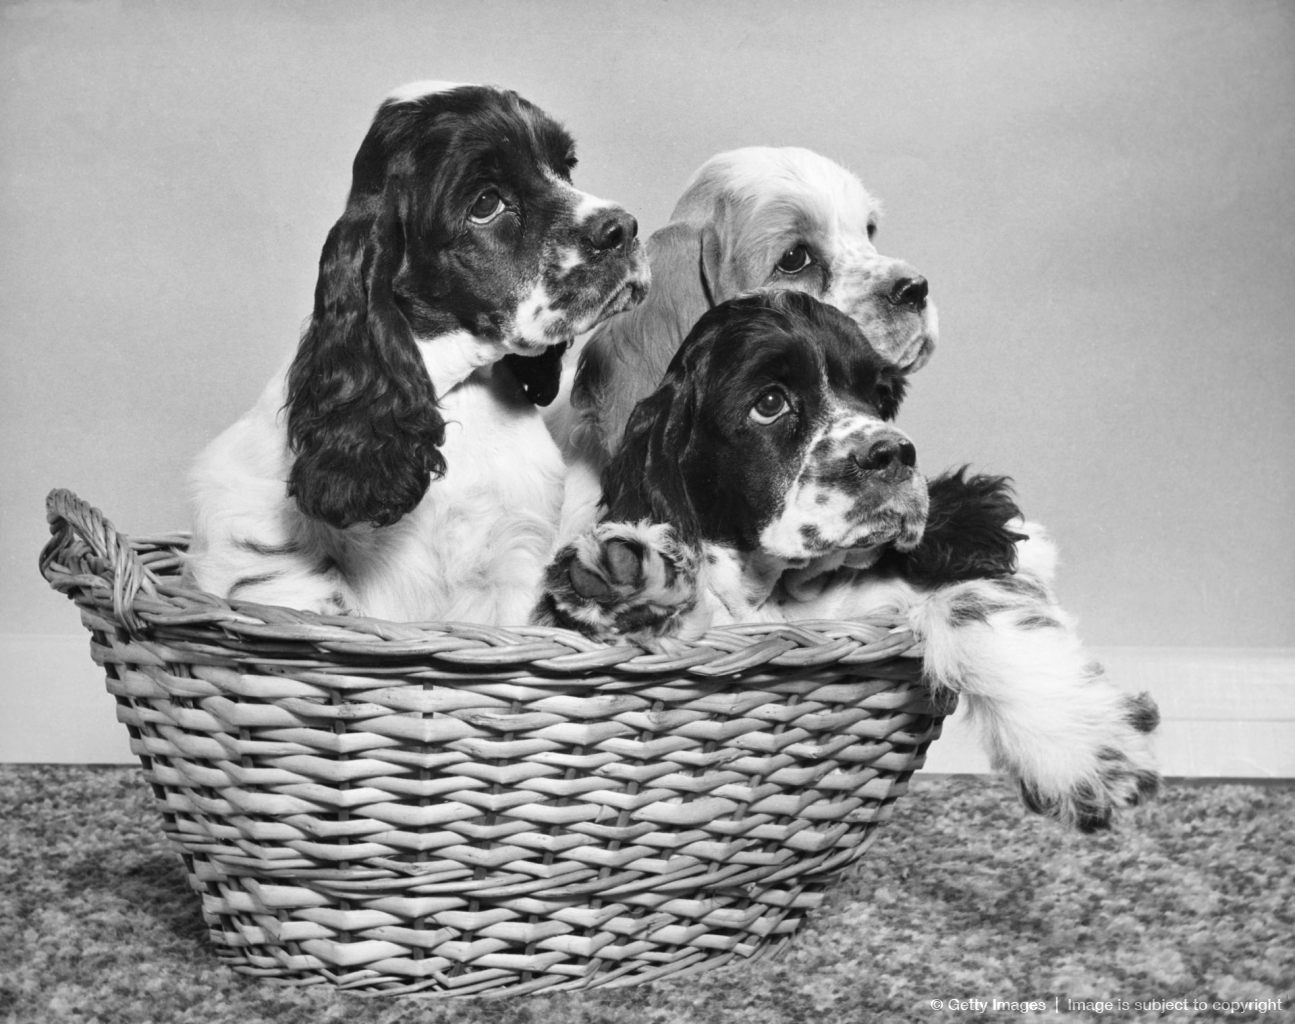 Cocker Spaniel puppies in a basket.